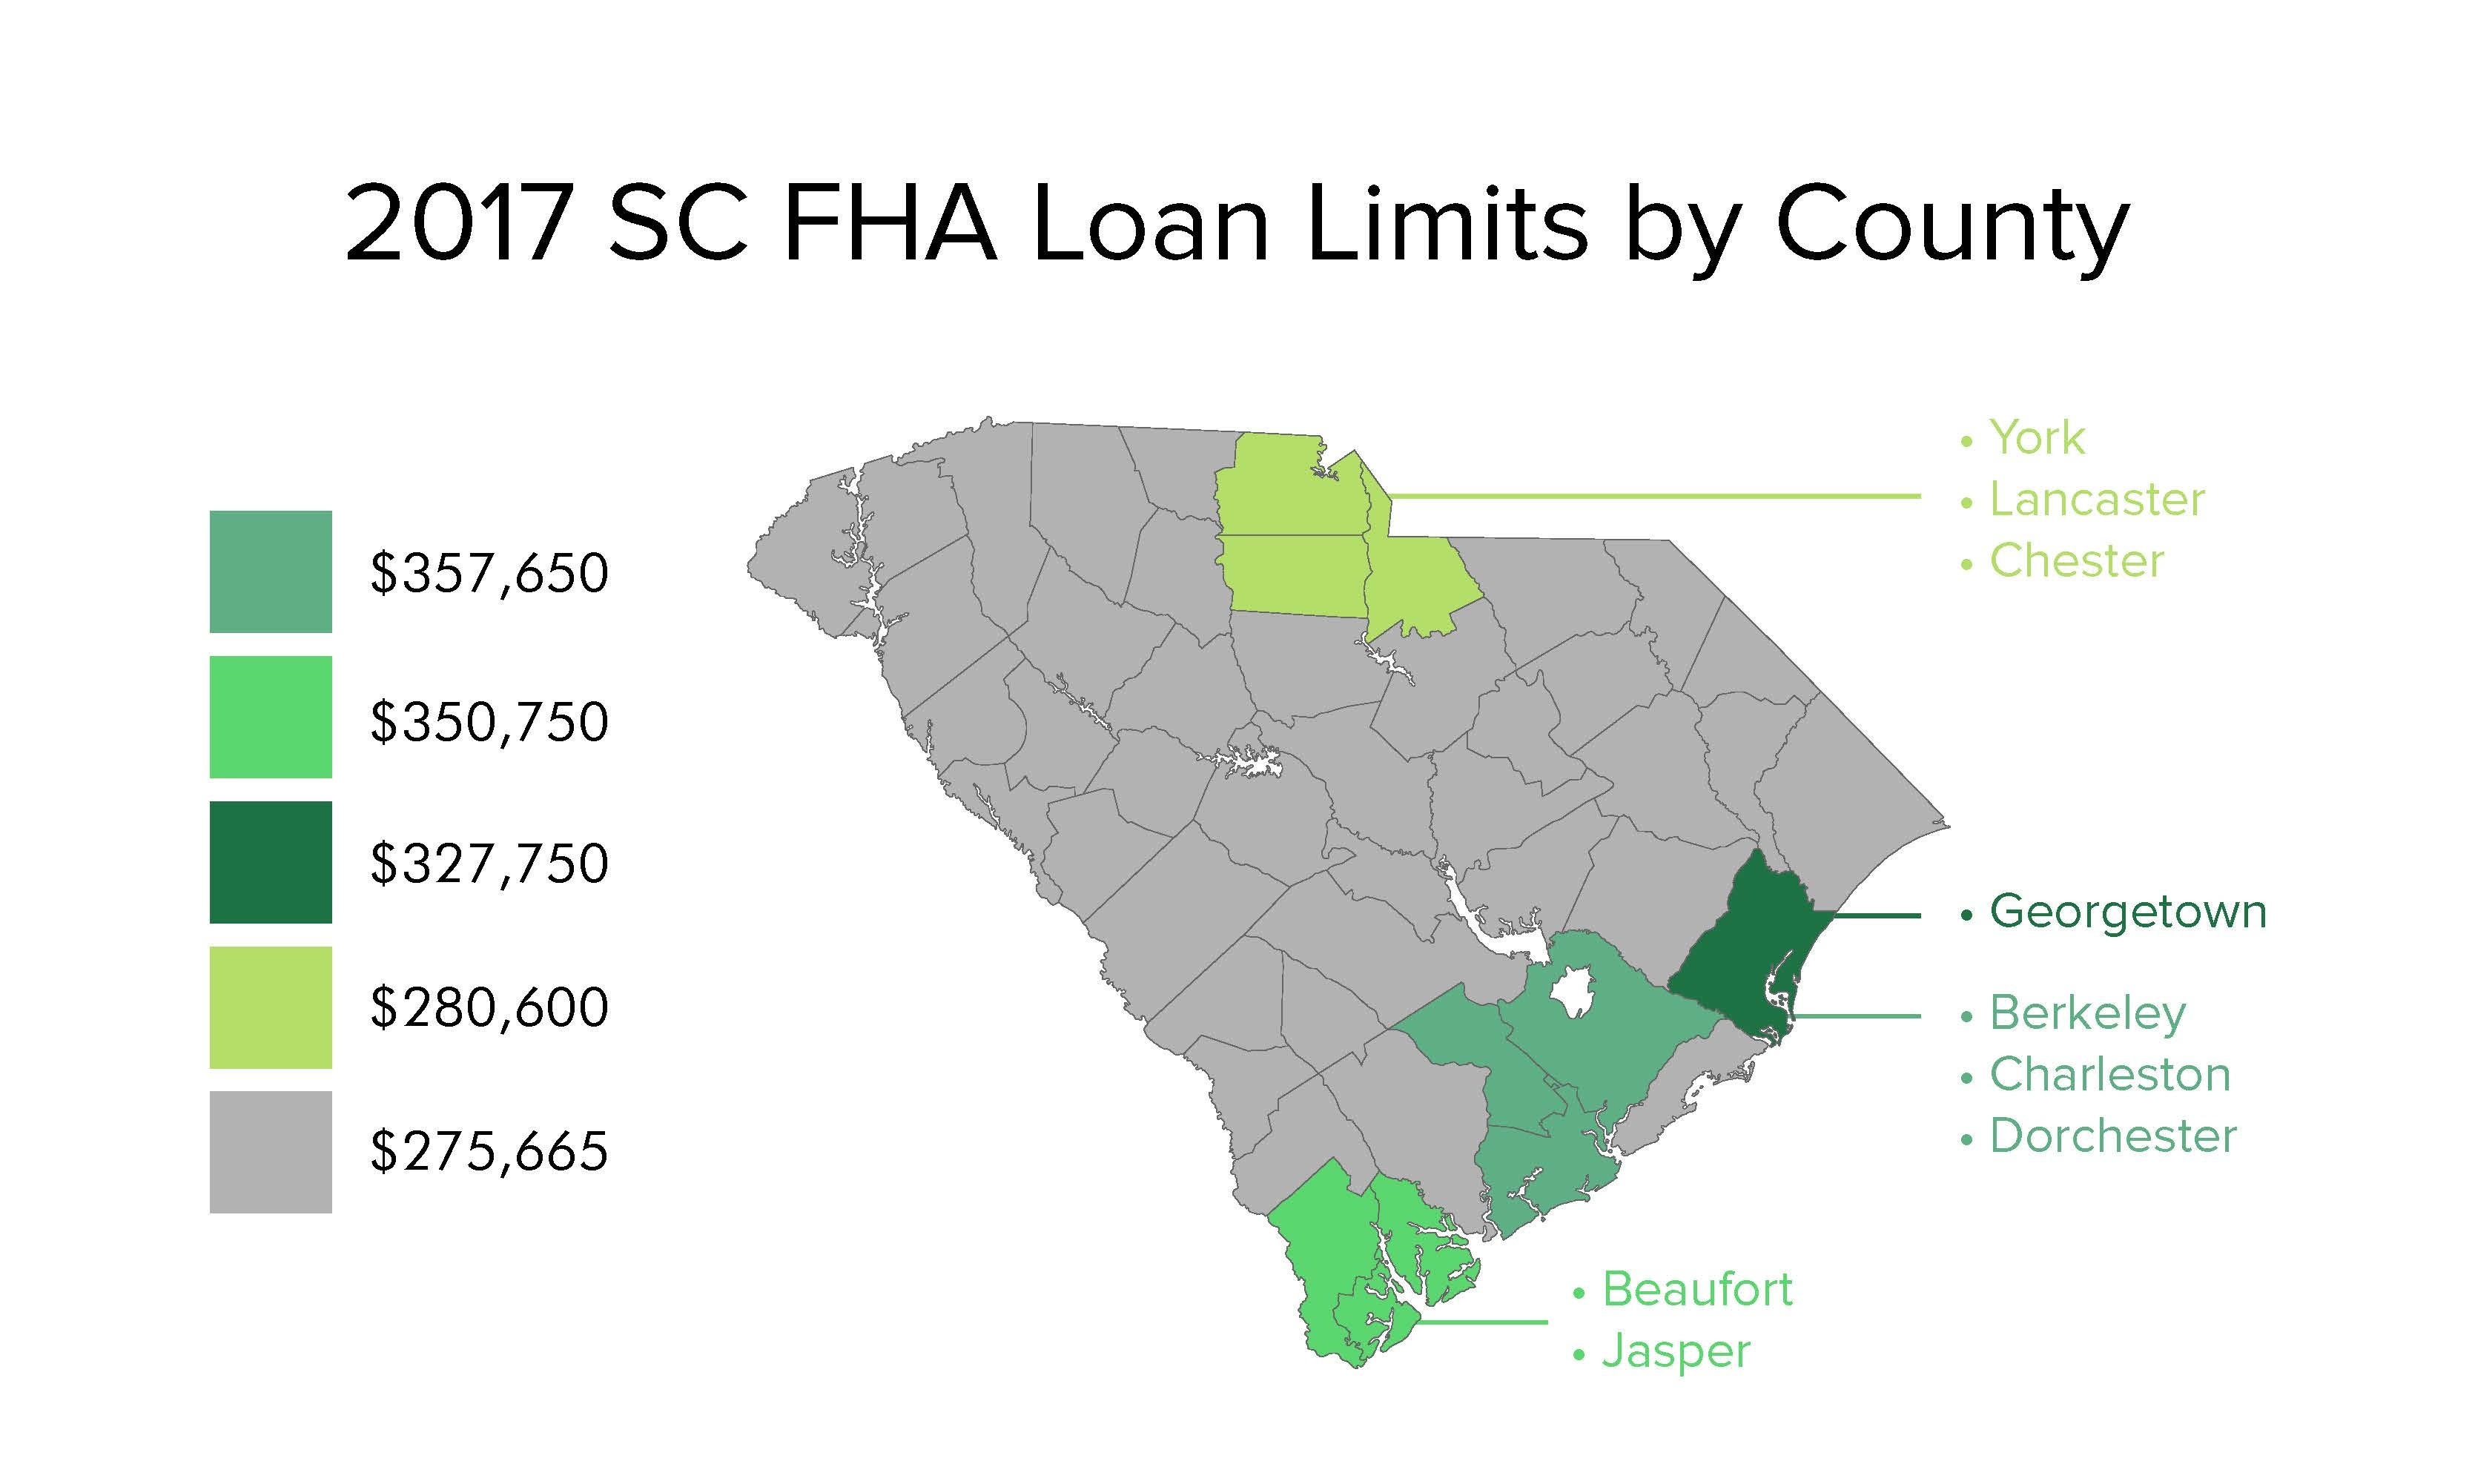 2017 SC FHA loan limits